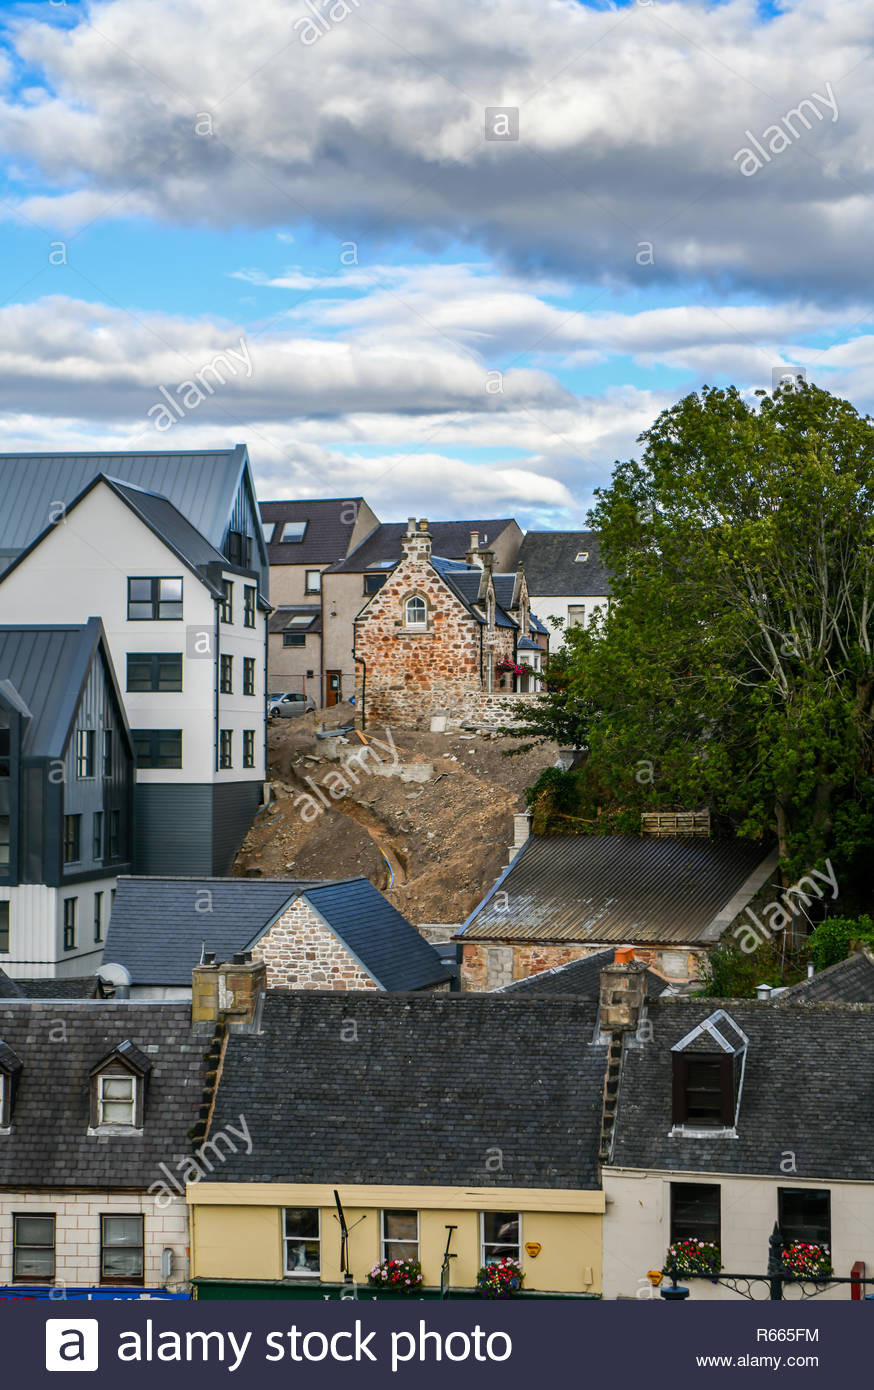 New Beautiful Houses Images Best Of Scotland Inverness City Old Building Bustling Between New